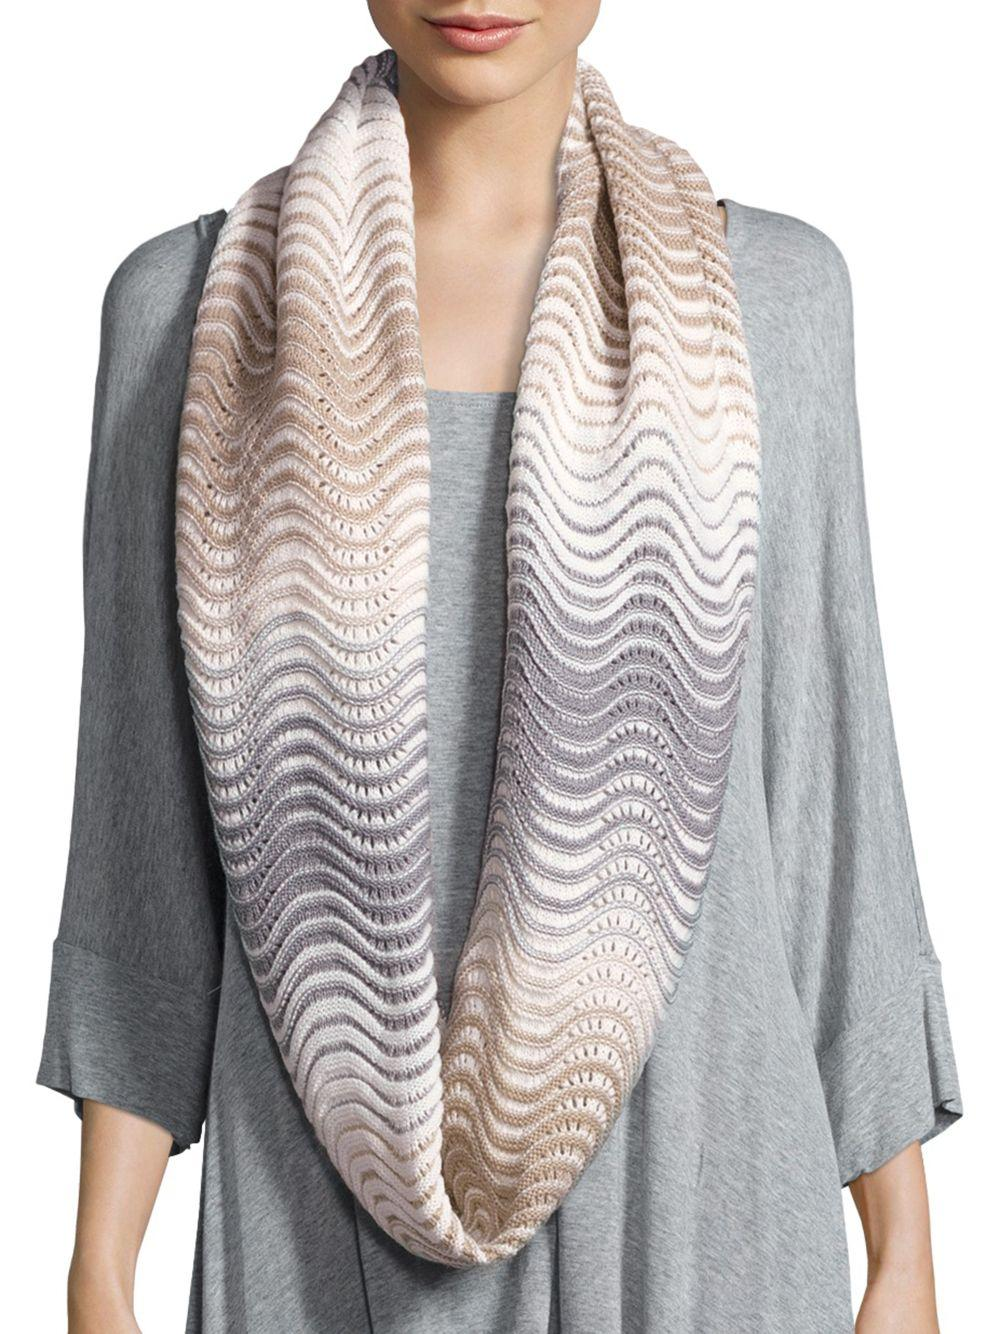 calvin klein rippled infinity scarf in gray lyst